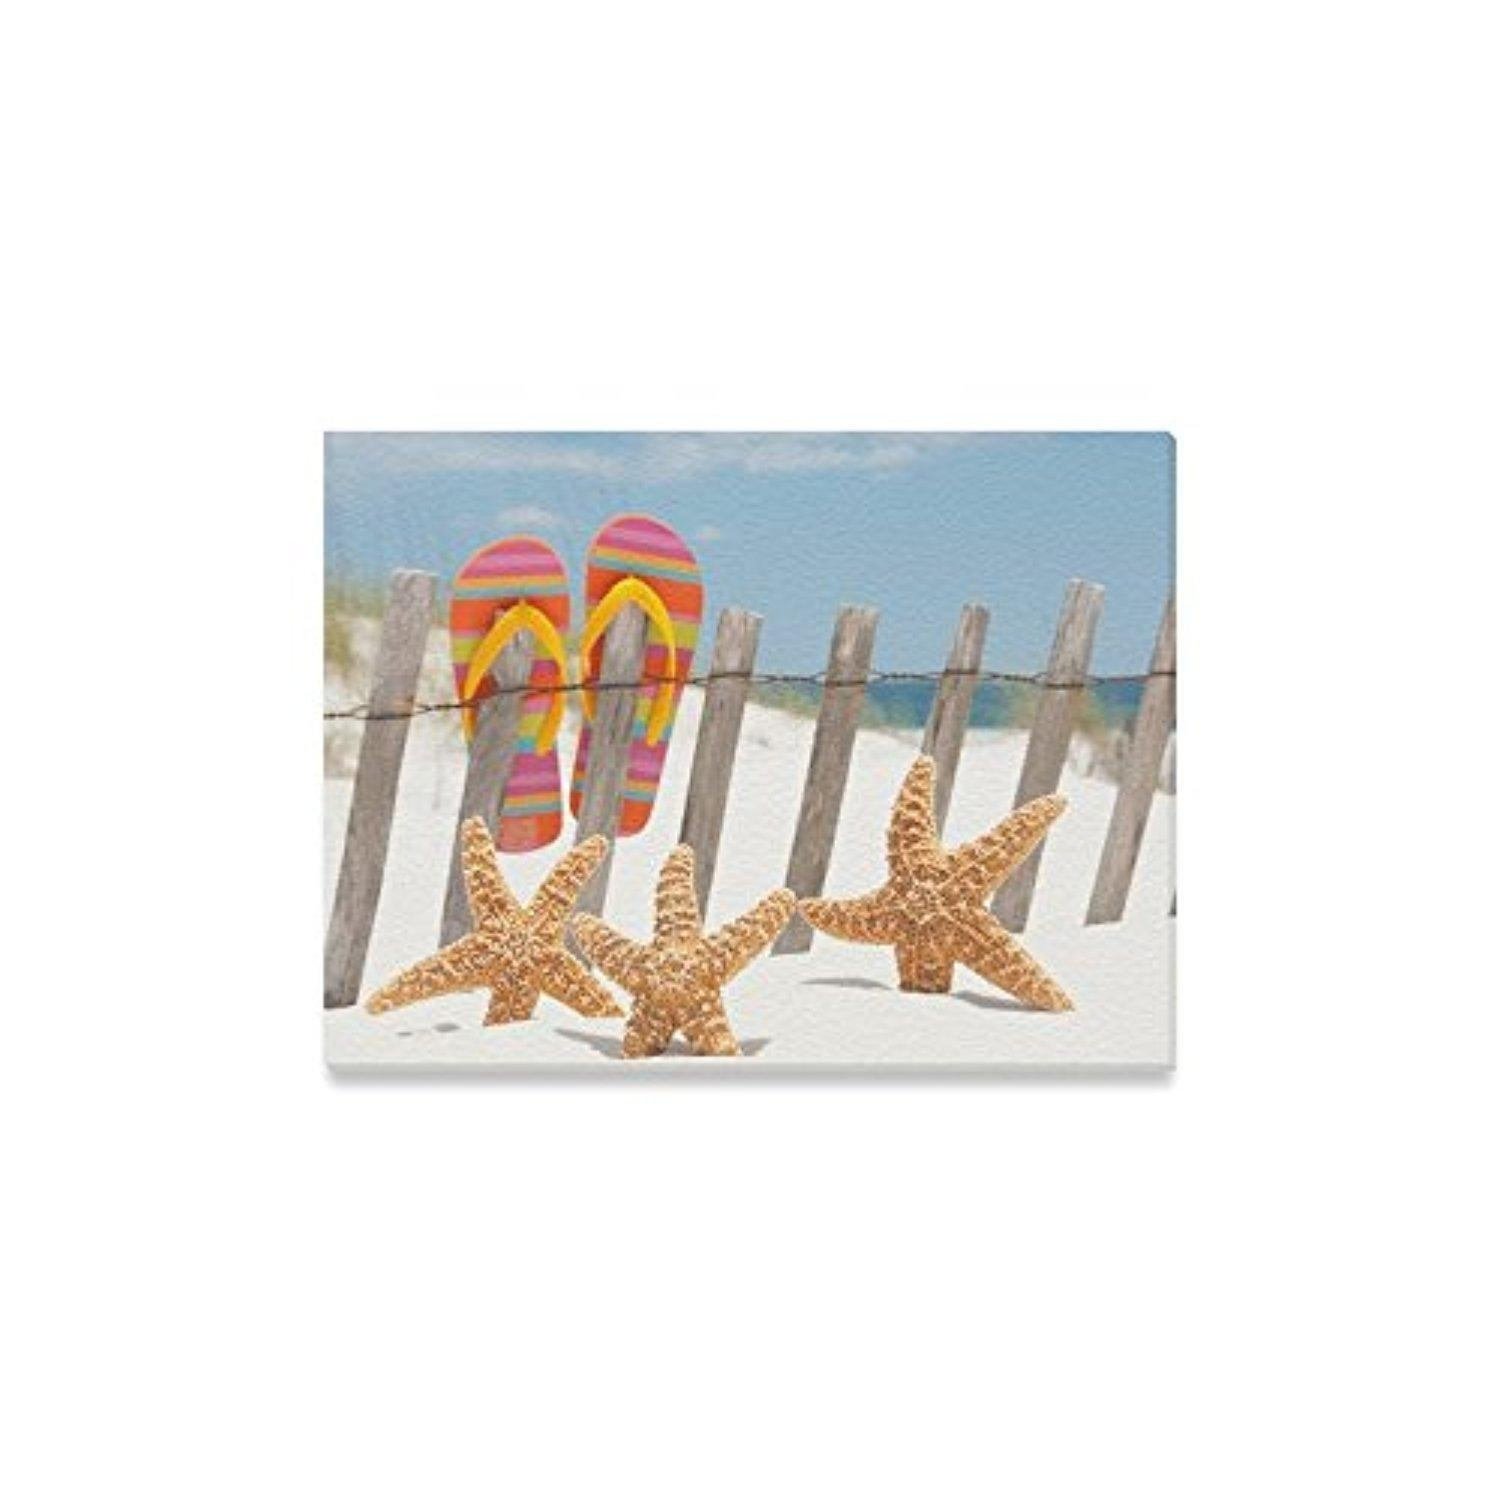 Online Store: Christmas Decor Beach Flip Flops Starfish Sunrise Within Flip Flop Wall Art (View 13 of 20)